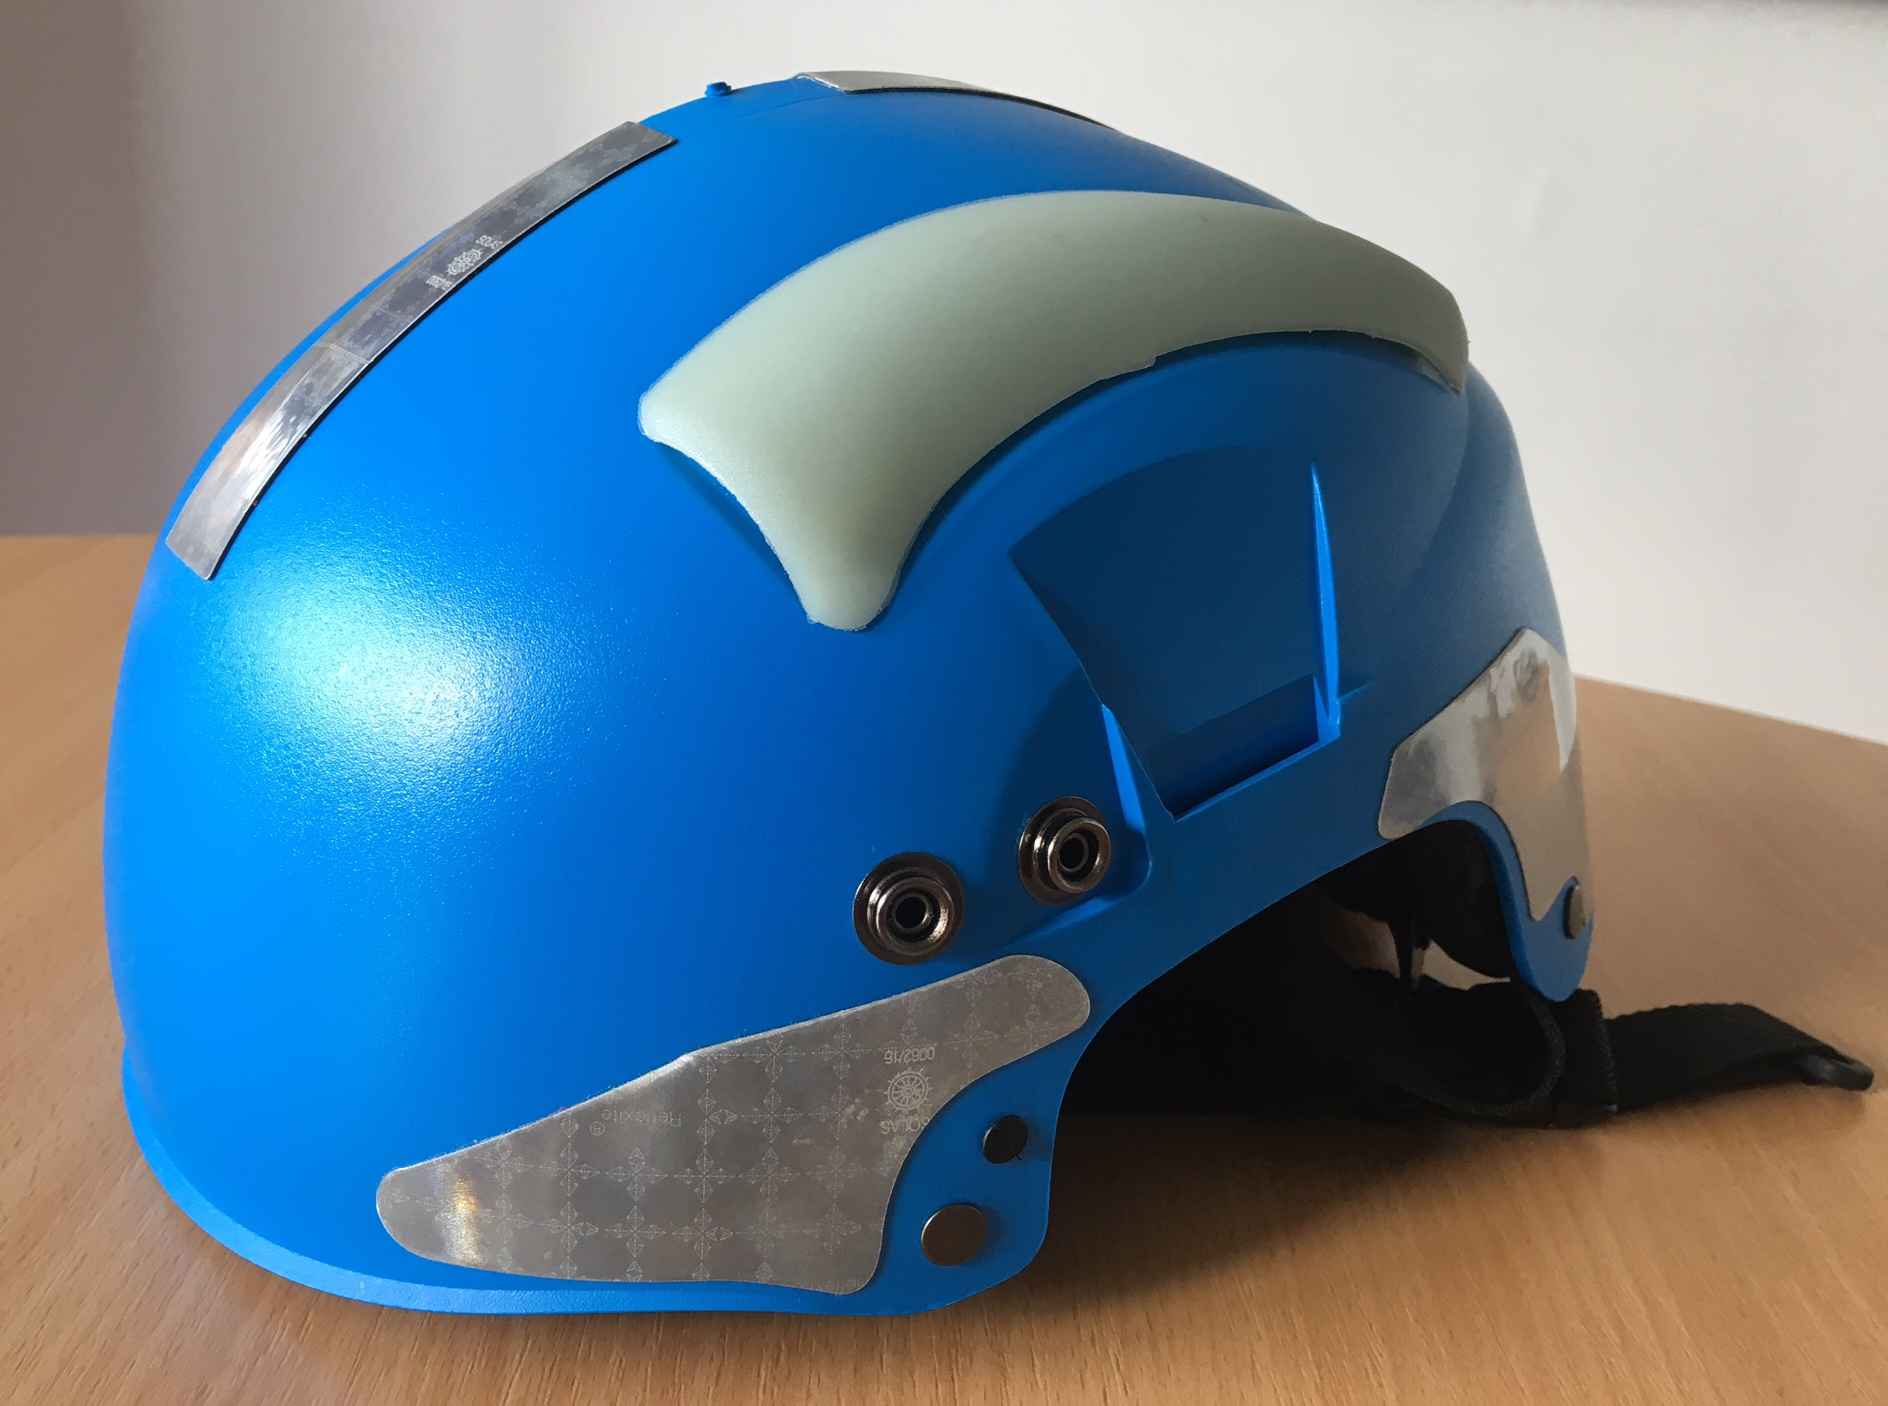 Blue helmet not worn